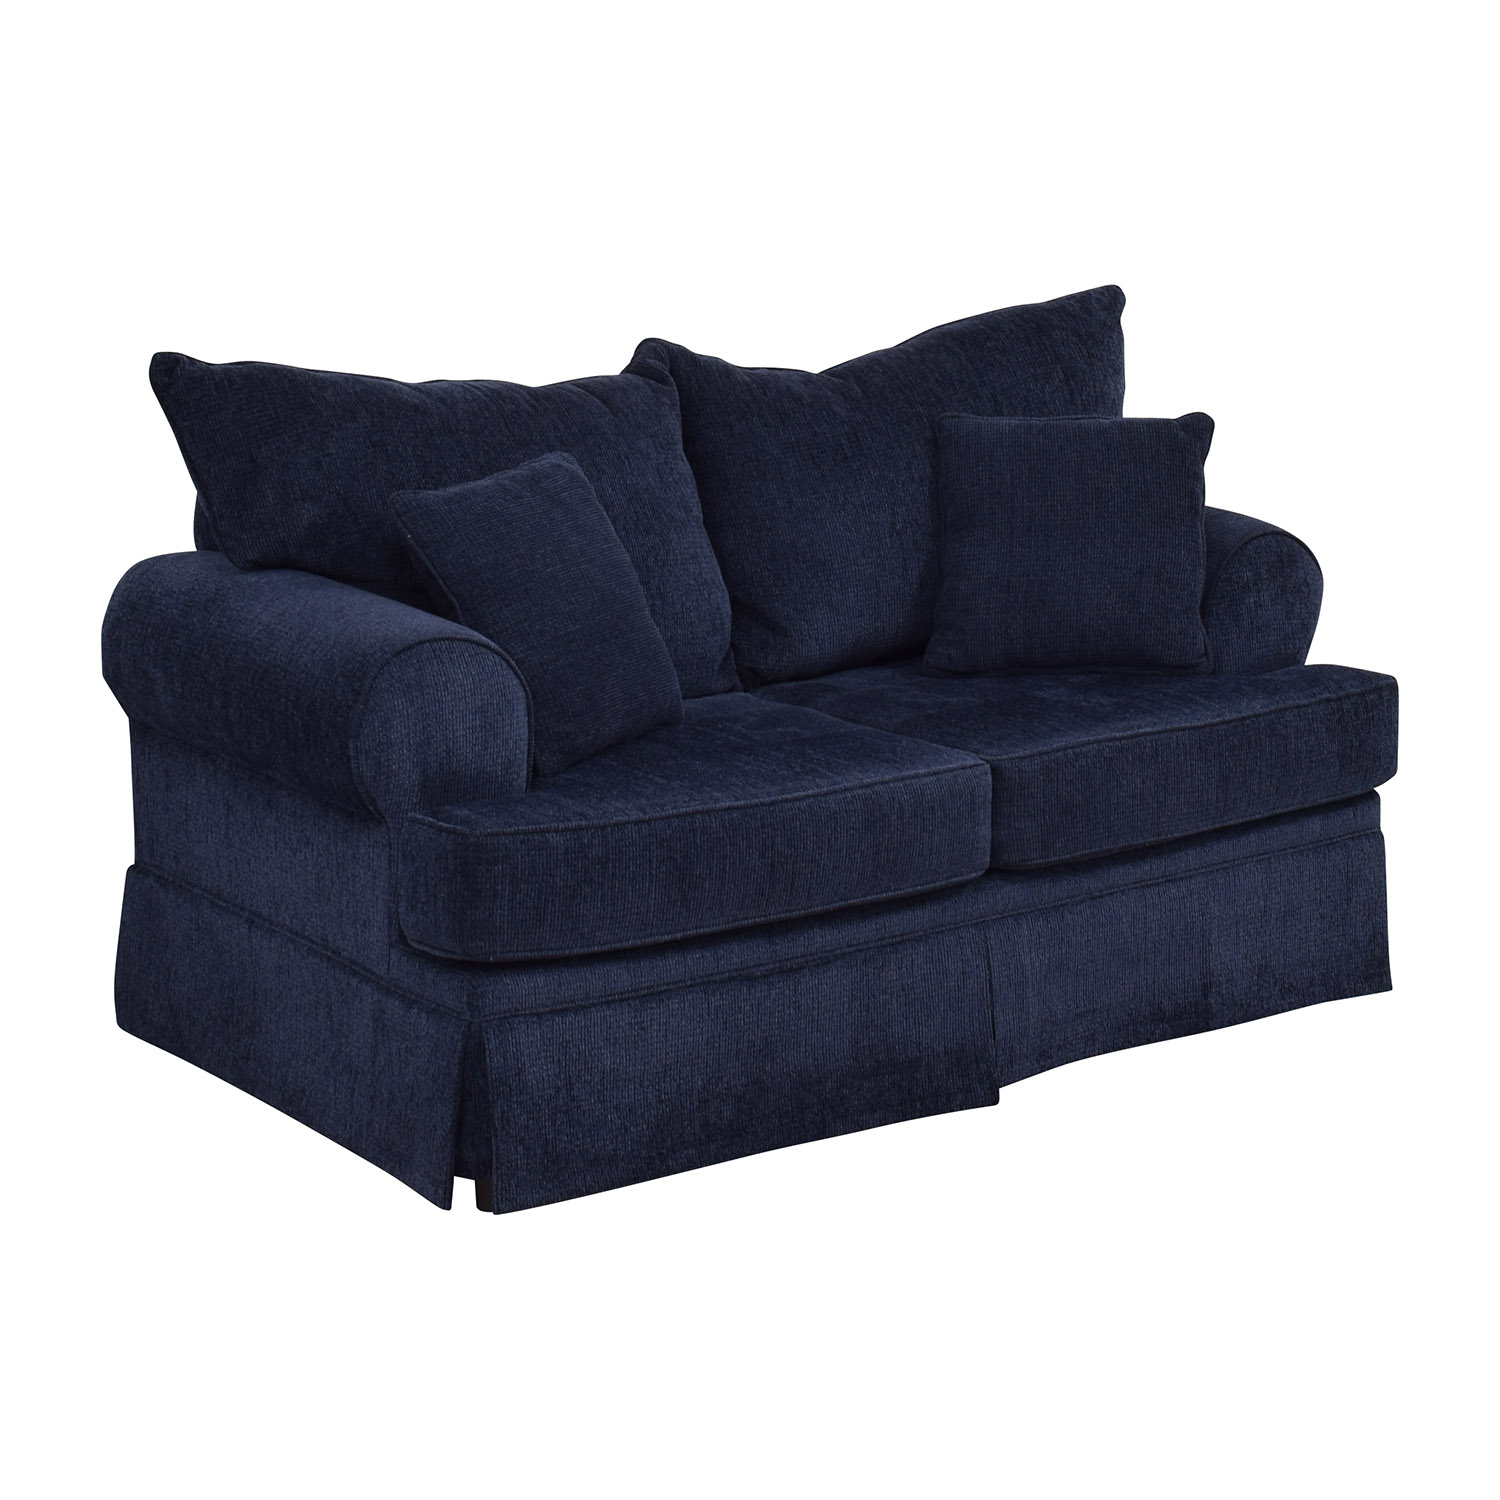 Bobs Furniture Bobs Furniture Deep Blue Loveseat dimensions